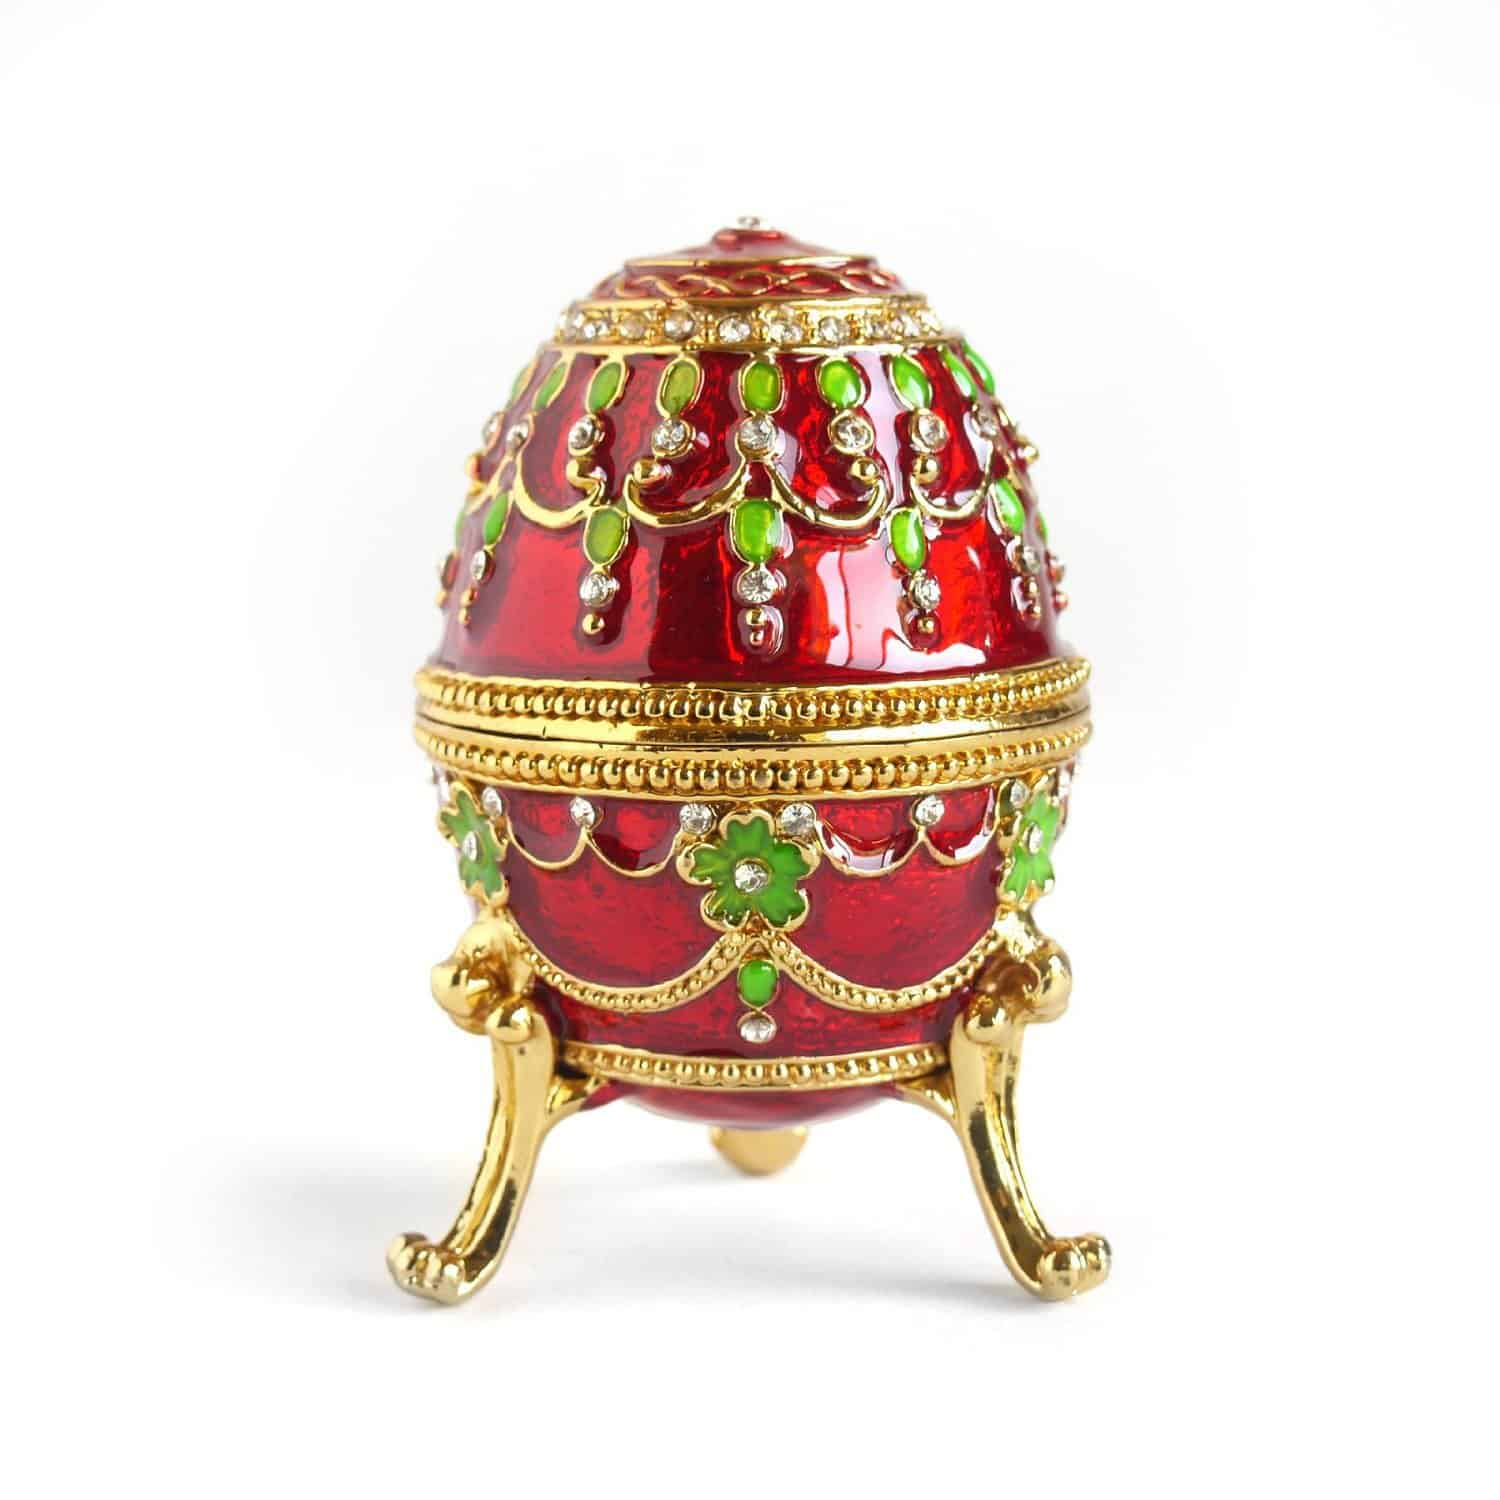 Rich Red Vintage Faberge Egg with Gold Finish